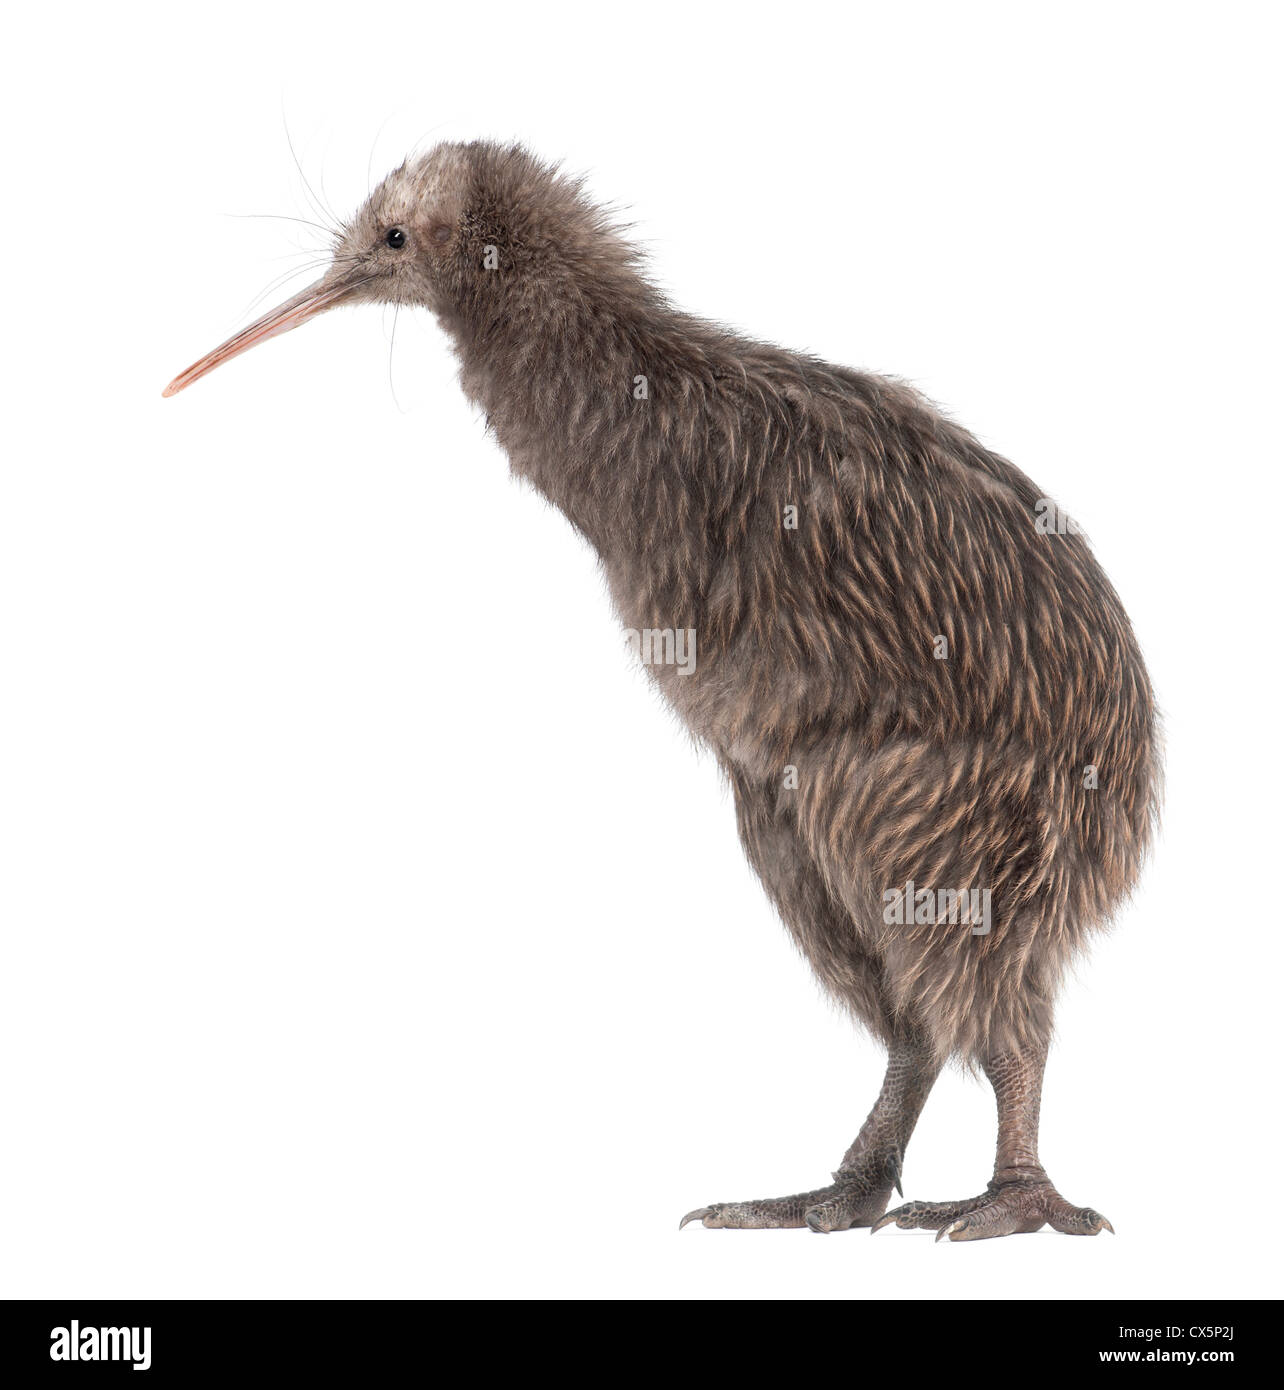 North Island Brown Kiwi, Apteryx mantelli, 5 months old, standing against white background - Stock Image